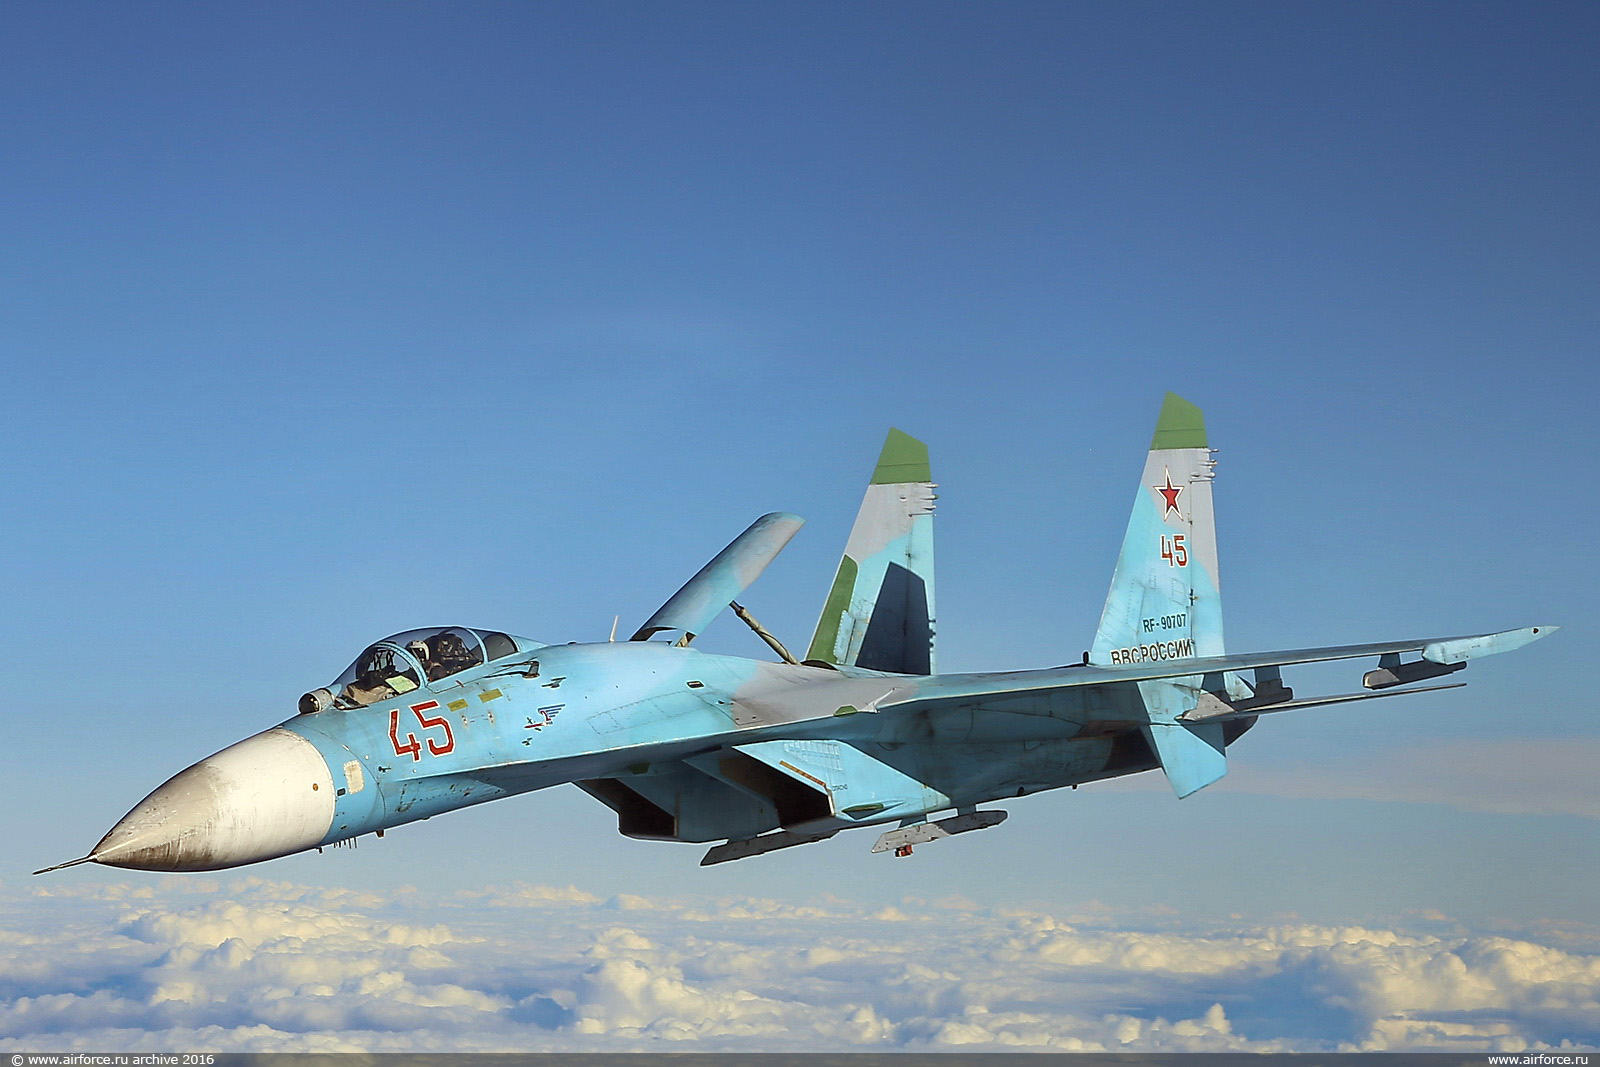 Su-27 fighter jet crashes in Moscow region - Kazakh culture